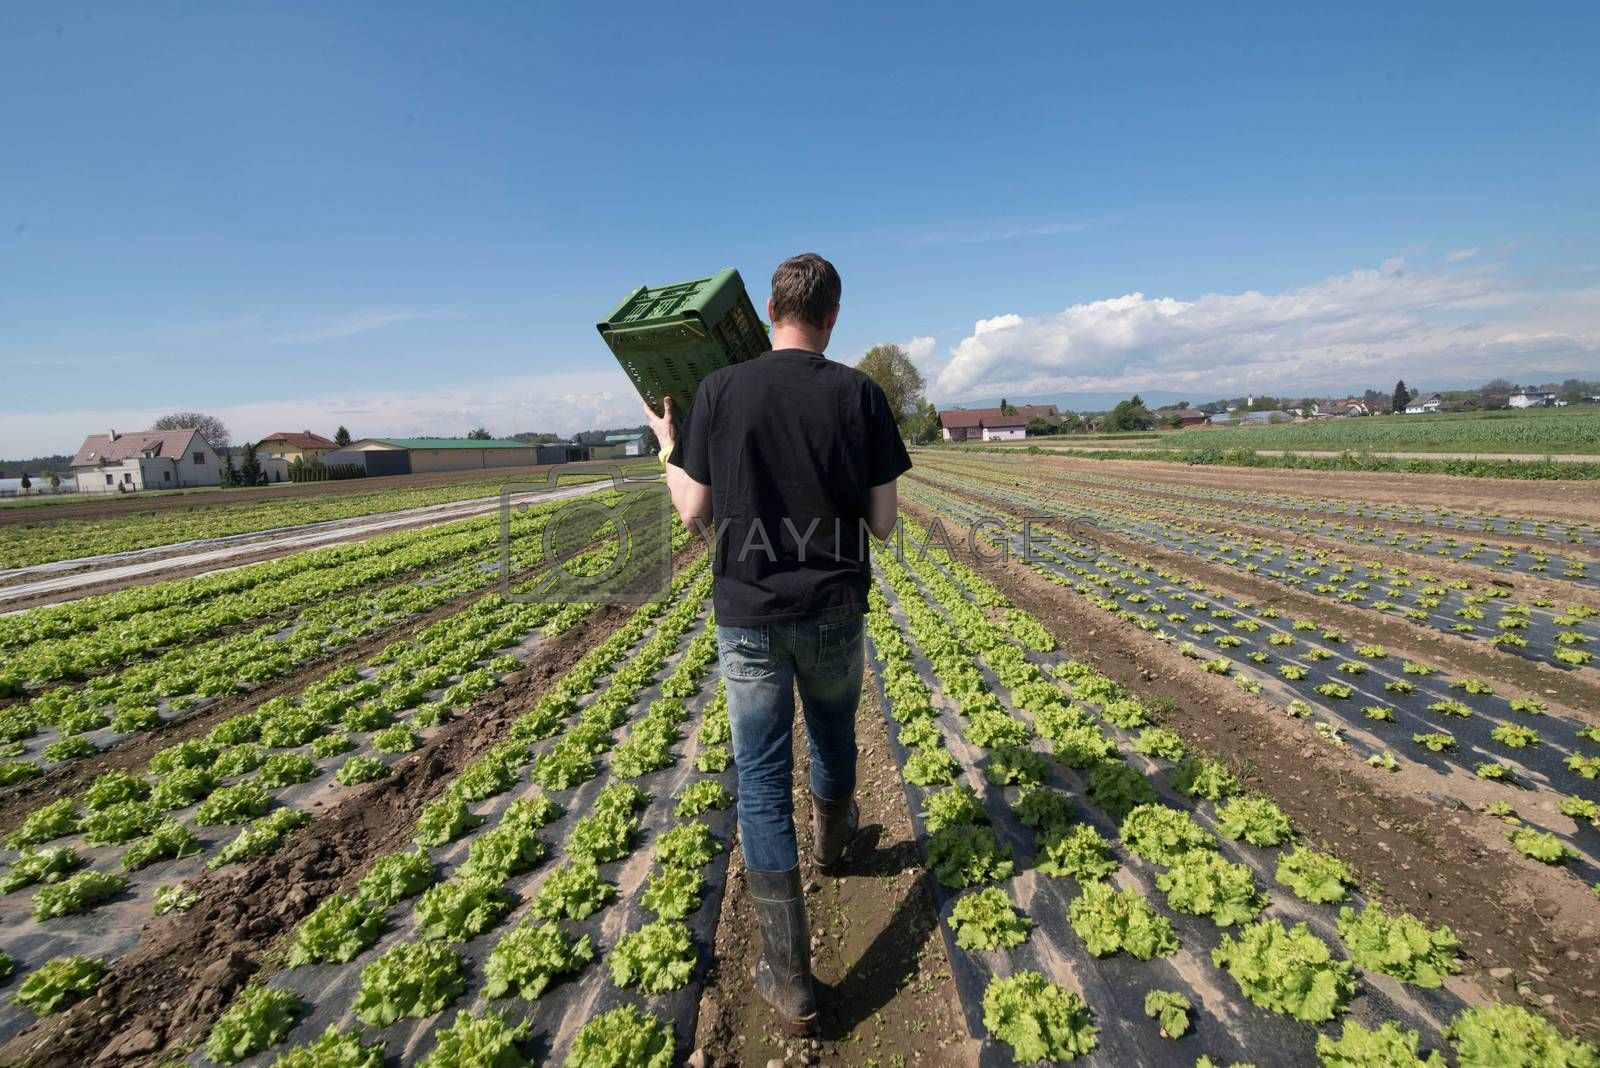 green salad field and farmer, long rows of lettuce in agricultural production